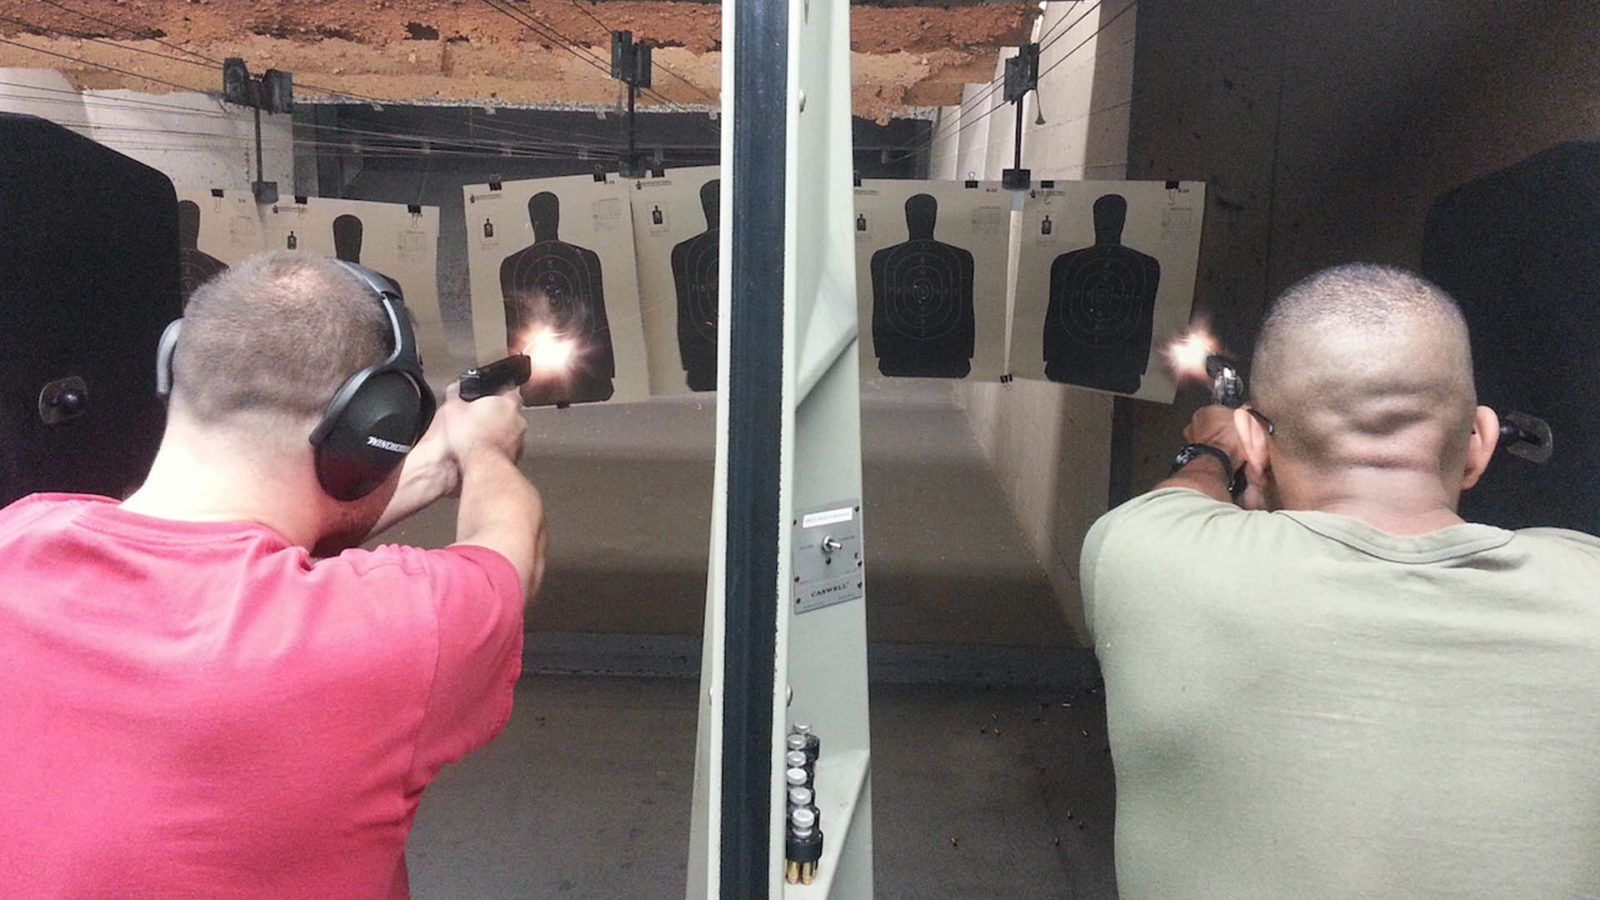 Statewide Firearms G Course